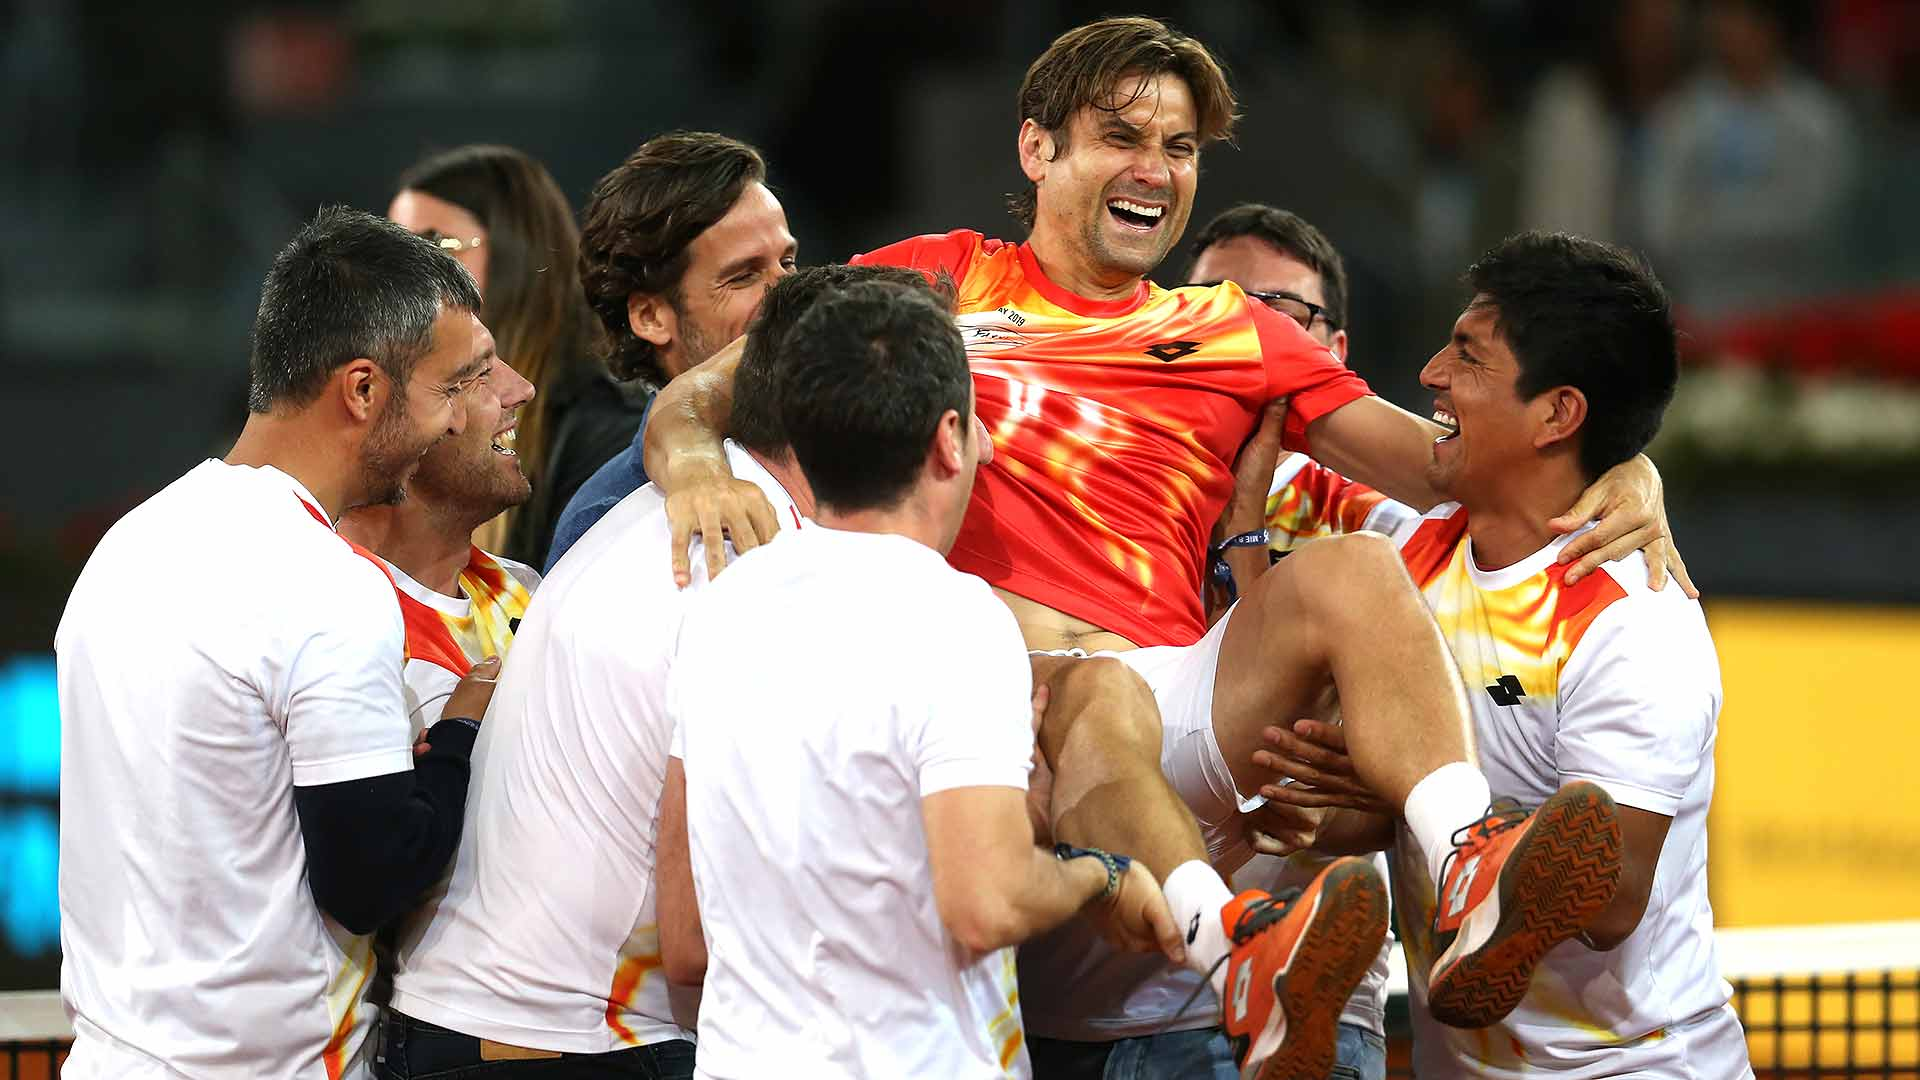 <a href='/en/players/david-ferrer/f401/overview'>David Ferrer</a> celebrates playing his final match at the <a href='/en/tournaments/madrid/1536/overview'>Mutua Madrid Open</a>